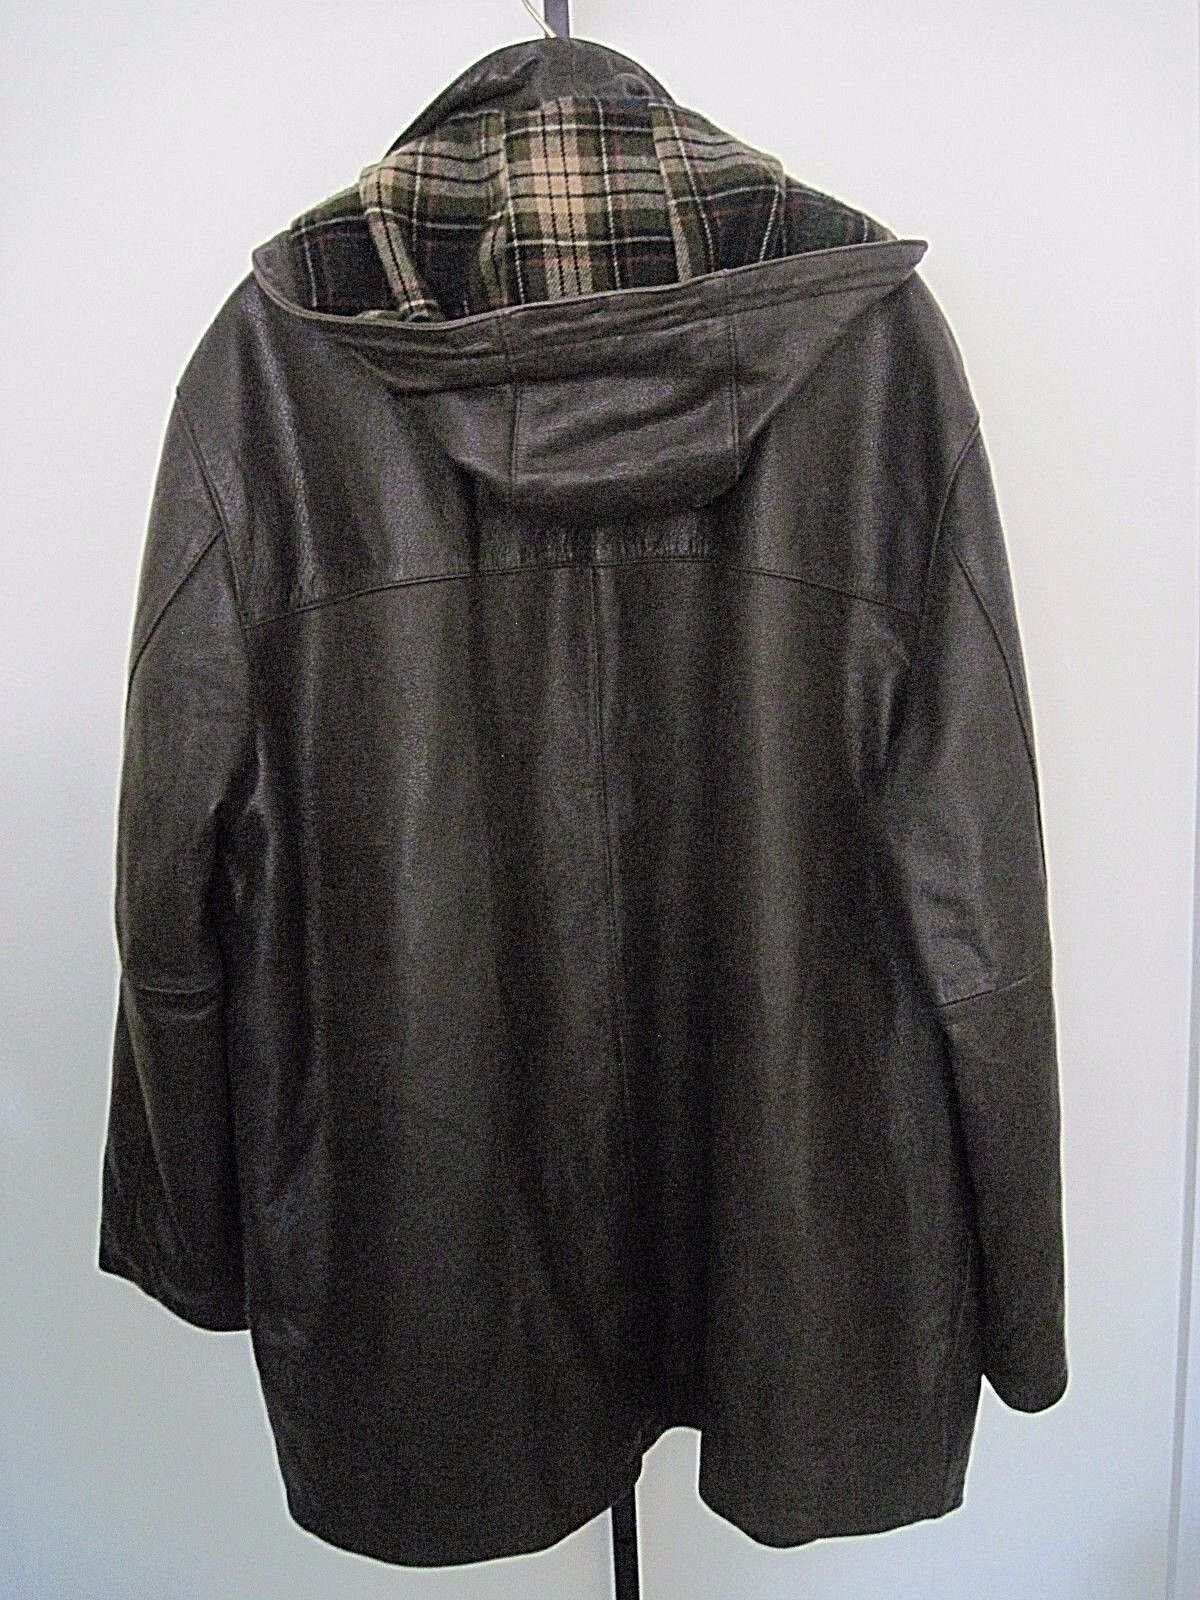 Roundtree & Yorke marrone Pelle Cappotto Cappotto Pelle With Removable Hood Lined Size XL f1ef07